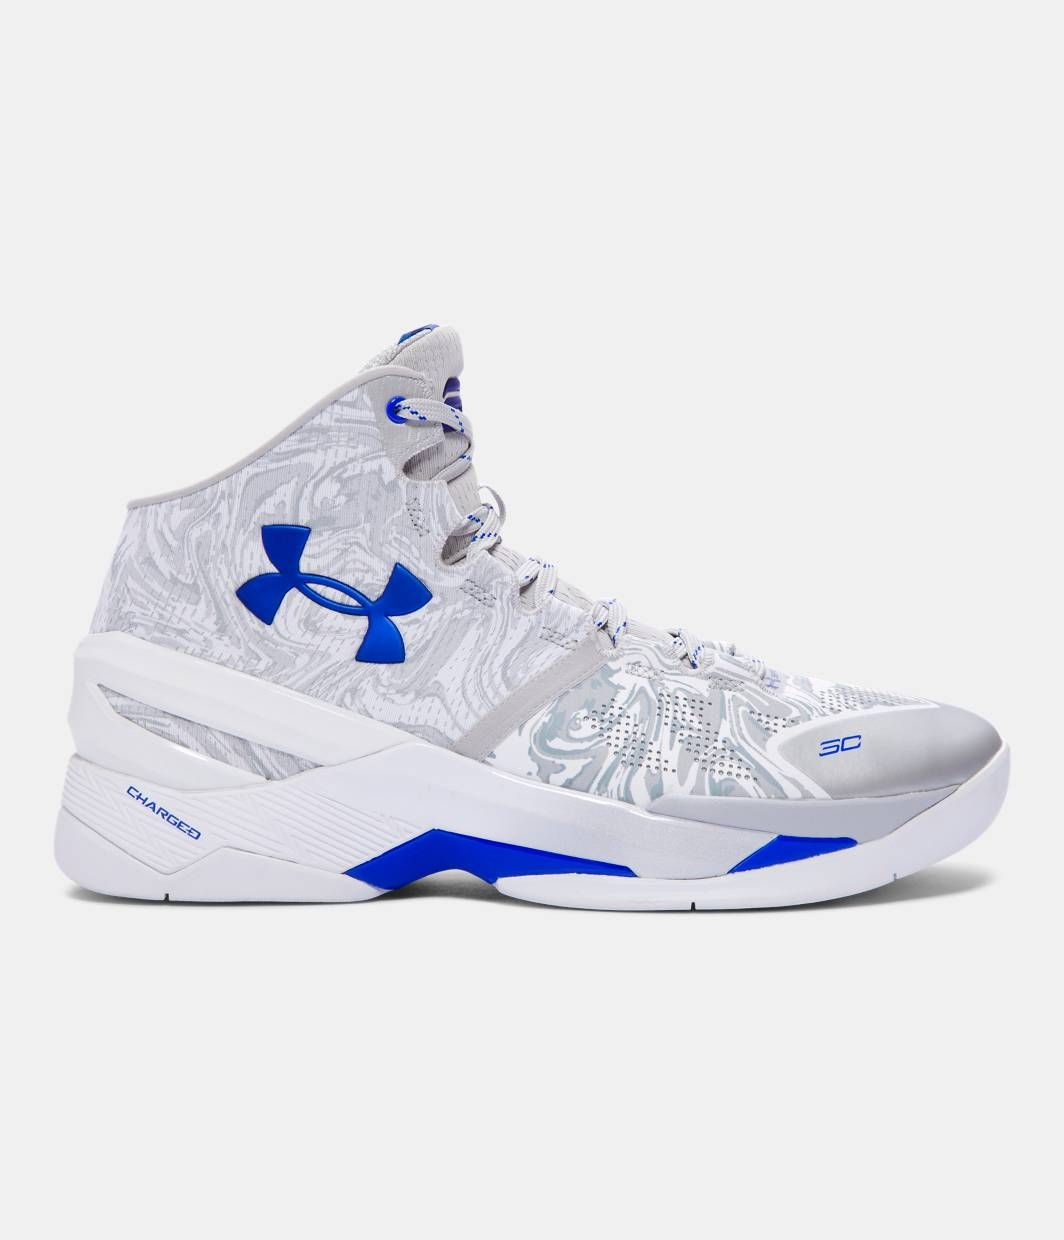 cfa6fe96a19d4c Shop Under Armour for Men s UA Curry Two Basketball Shoes in our Mens  Sneakers department. Free shipping is available in US.